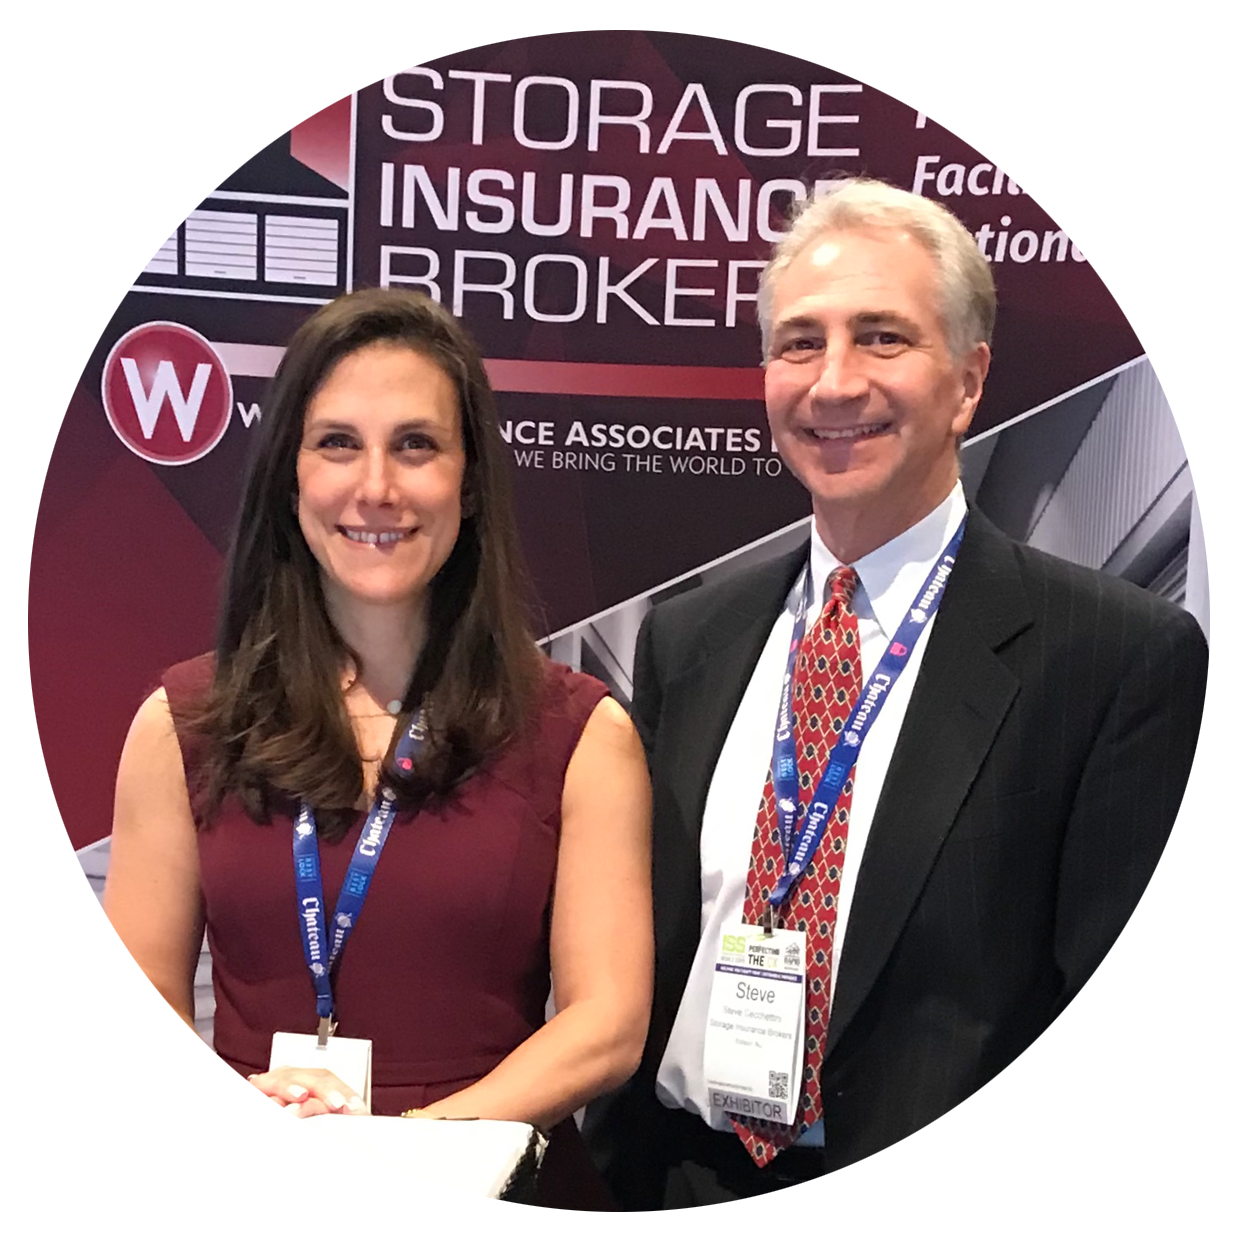 Storage Insurance Brokers Events